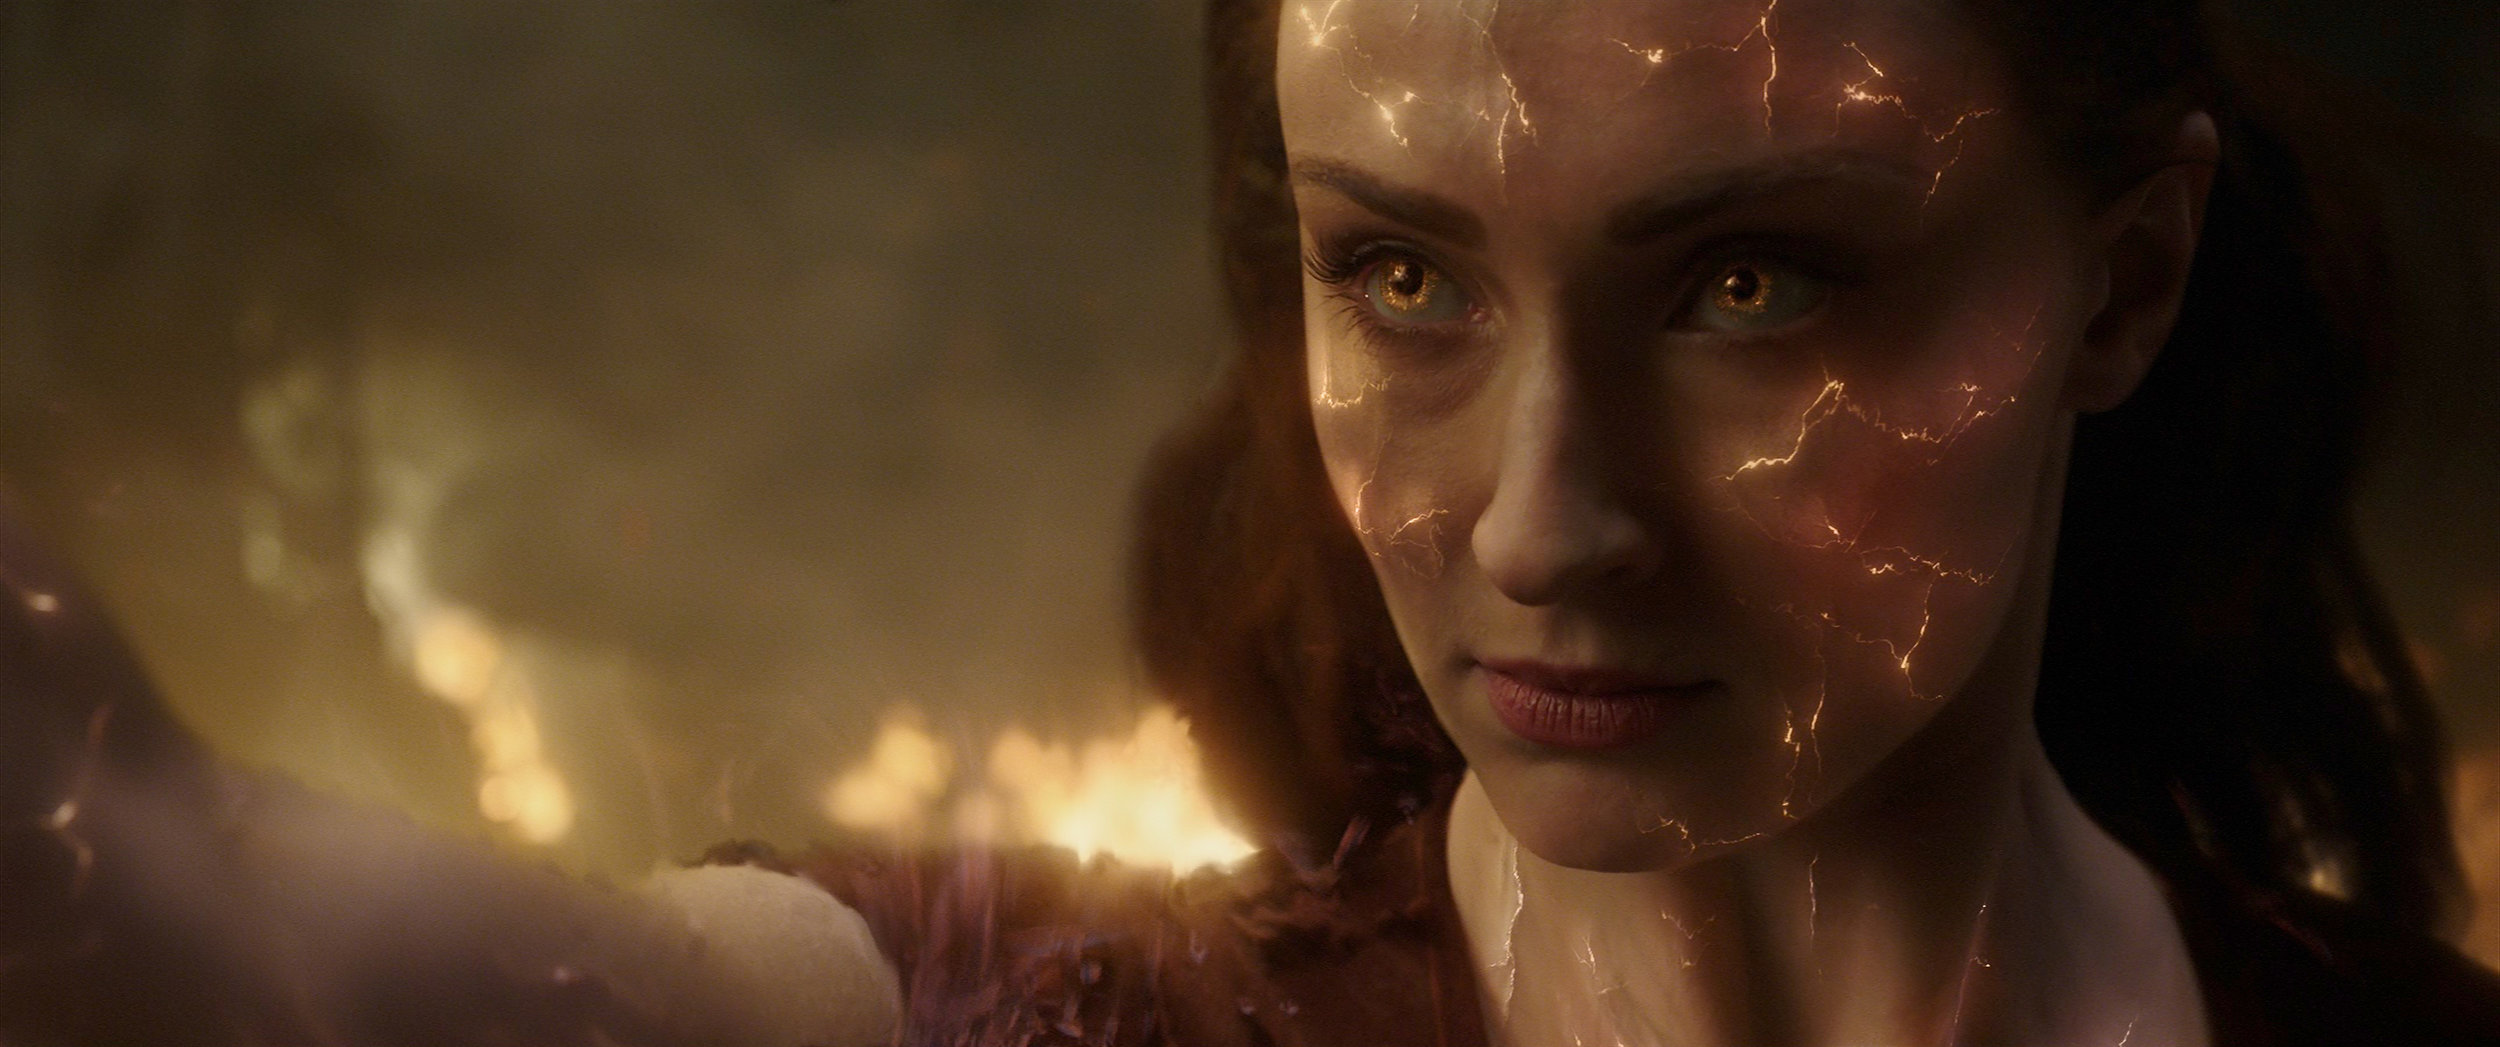 Sophie Turner as the enraged title mutant about to go nuclear in Dark Phoenix